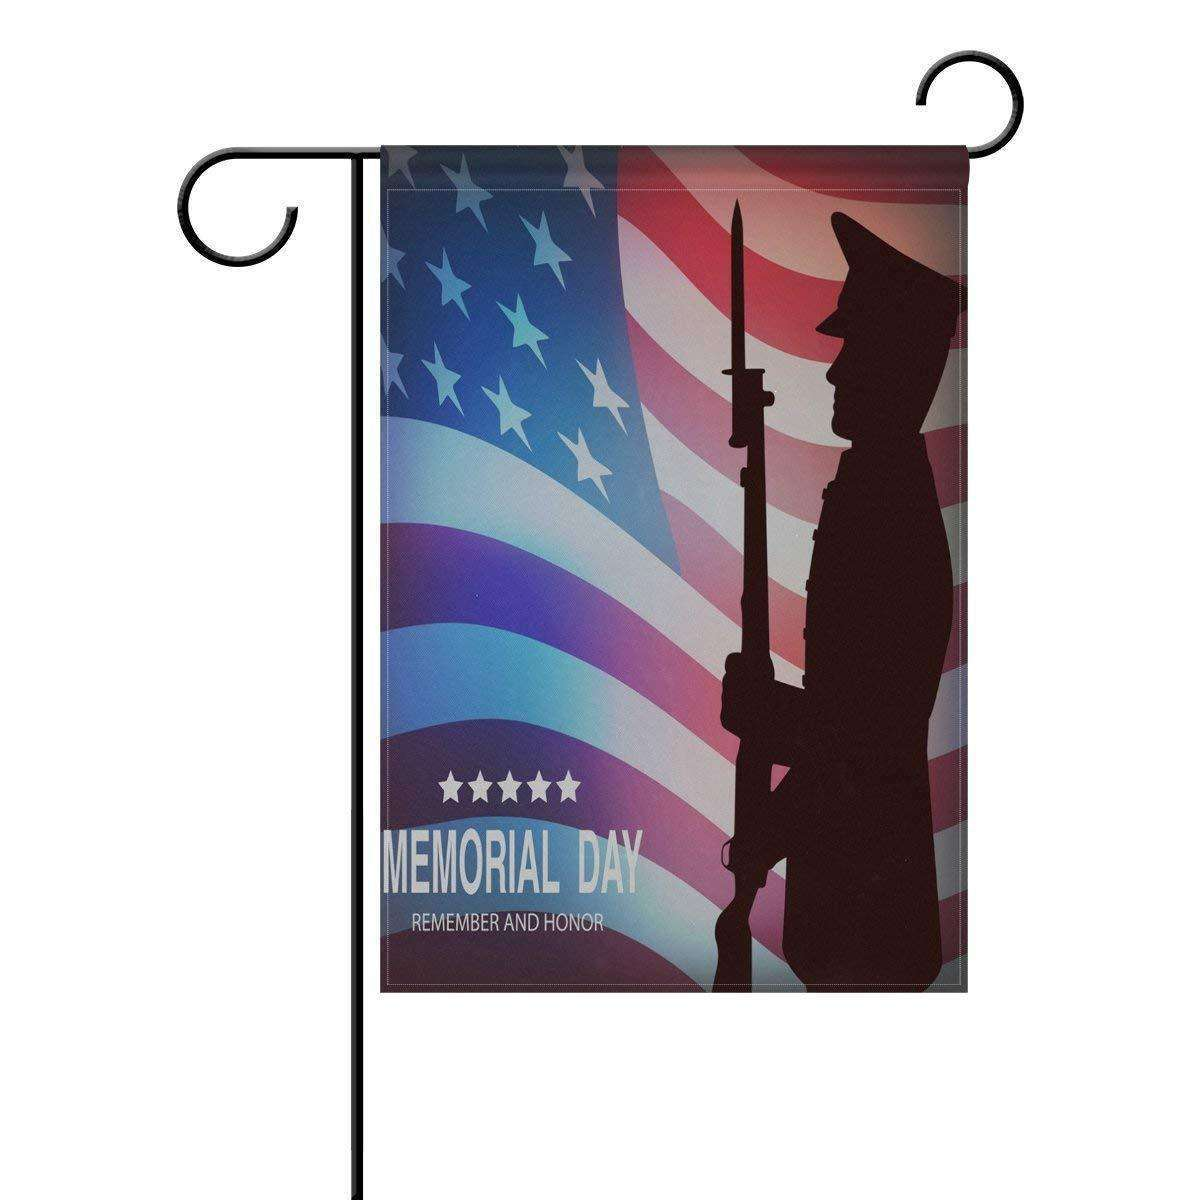 ALAZA Patriotic Eagle Garden Flag Yard Decoration, 4th Of July Memorial Day Independence Day USA American Flag Double-sided Polyester House Banner for Home Outdoor Anniversary Decor, 12